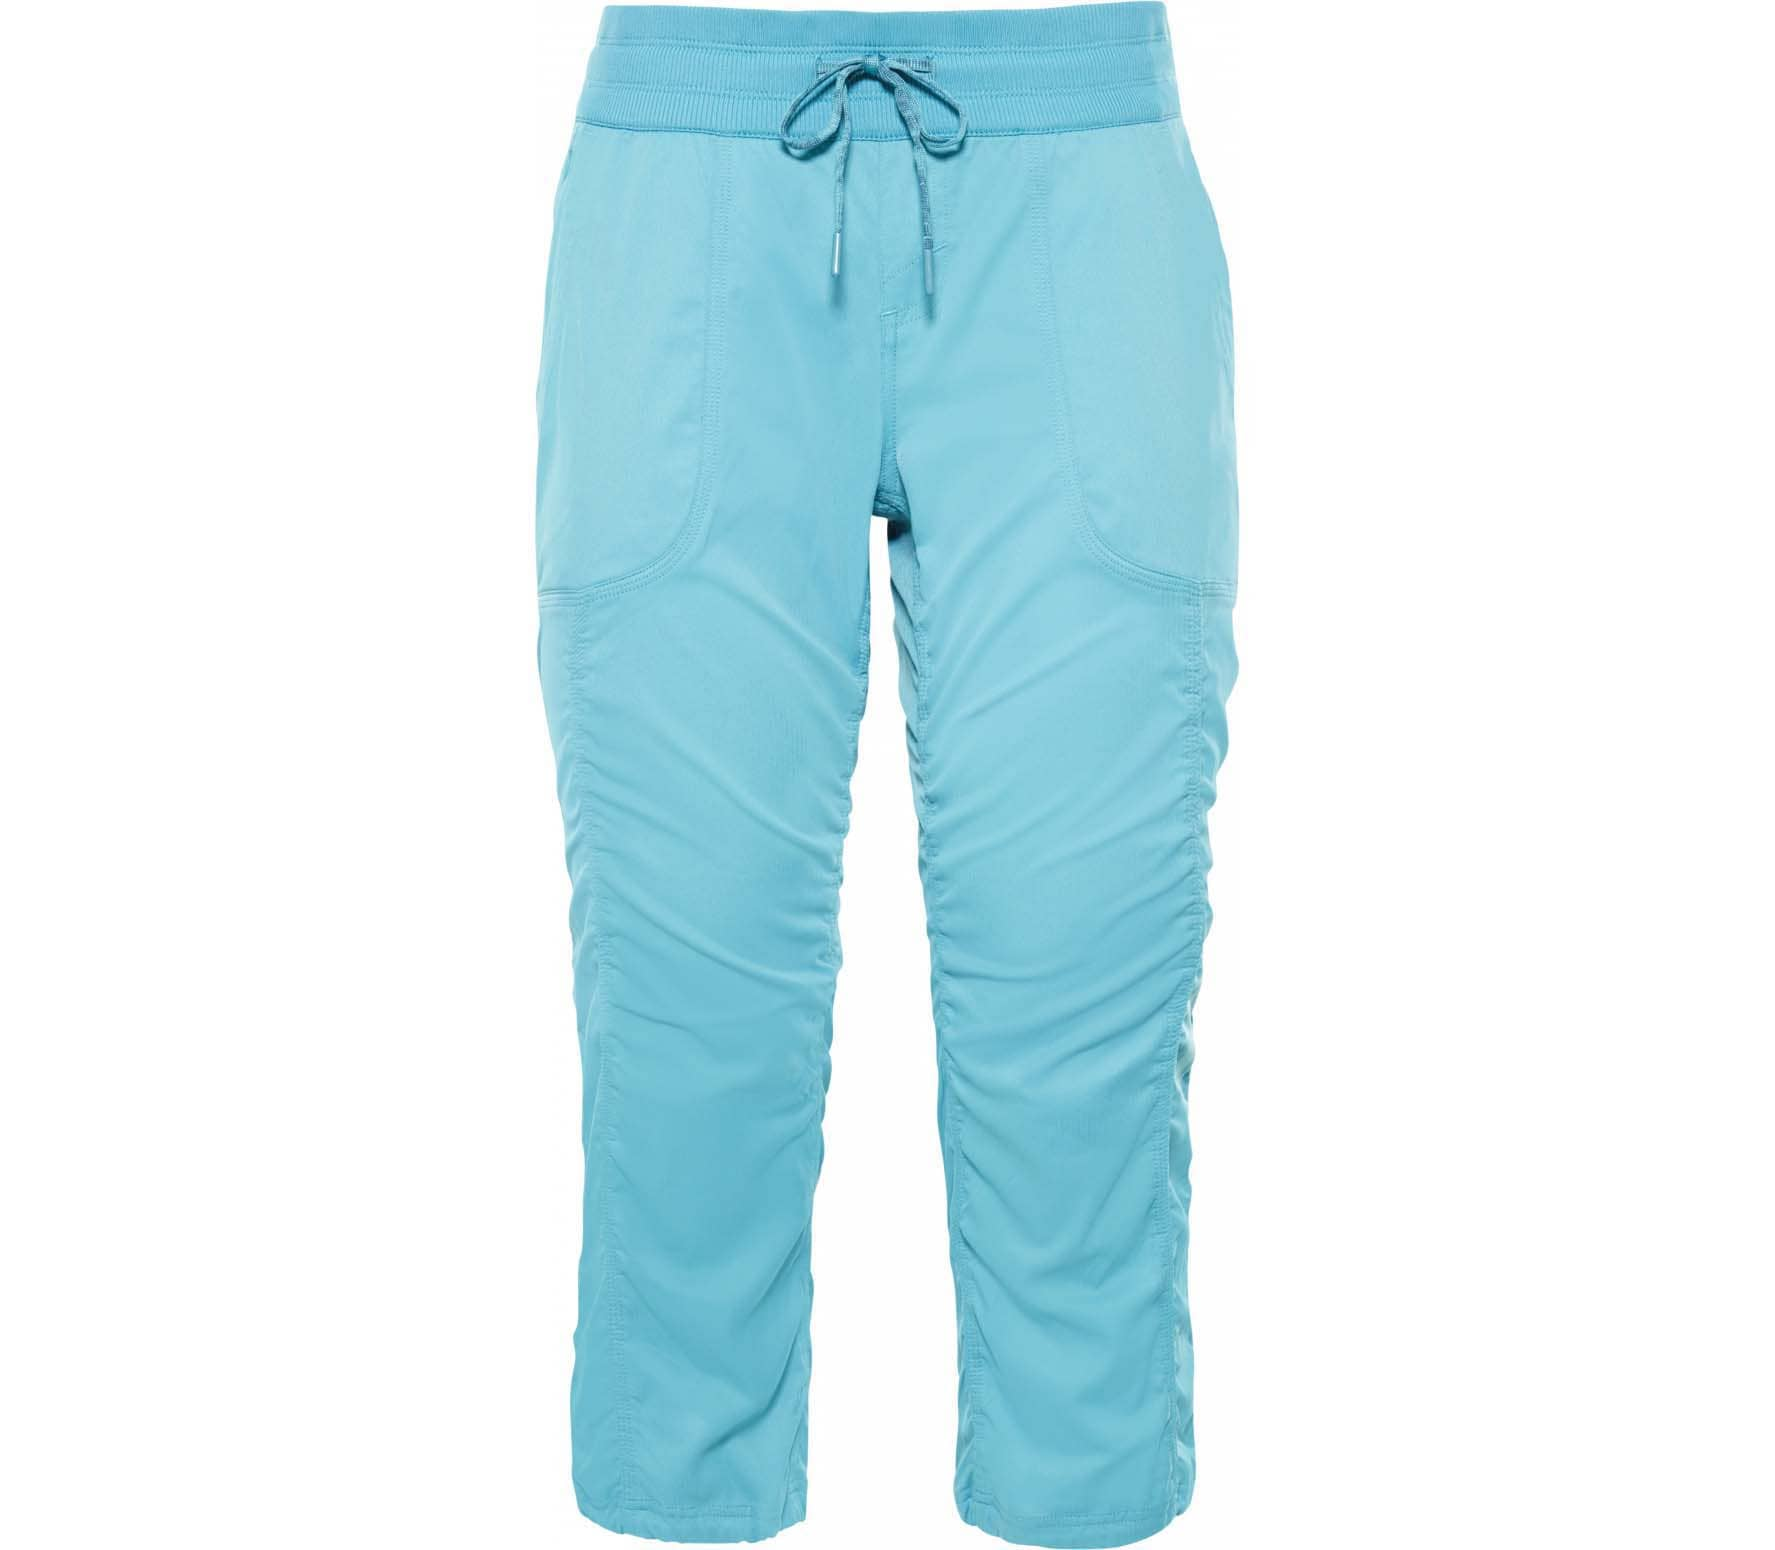 96fc098673 The North Face - Aphrodite 2.0 Regular women's capri pants pants (blue)